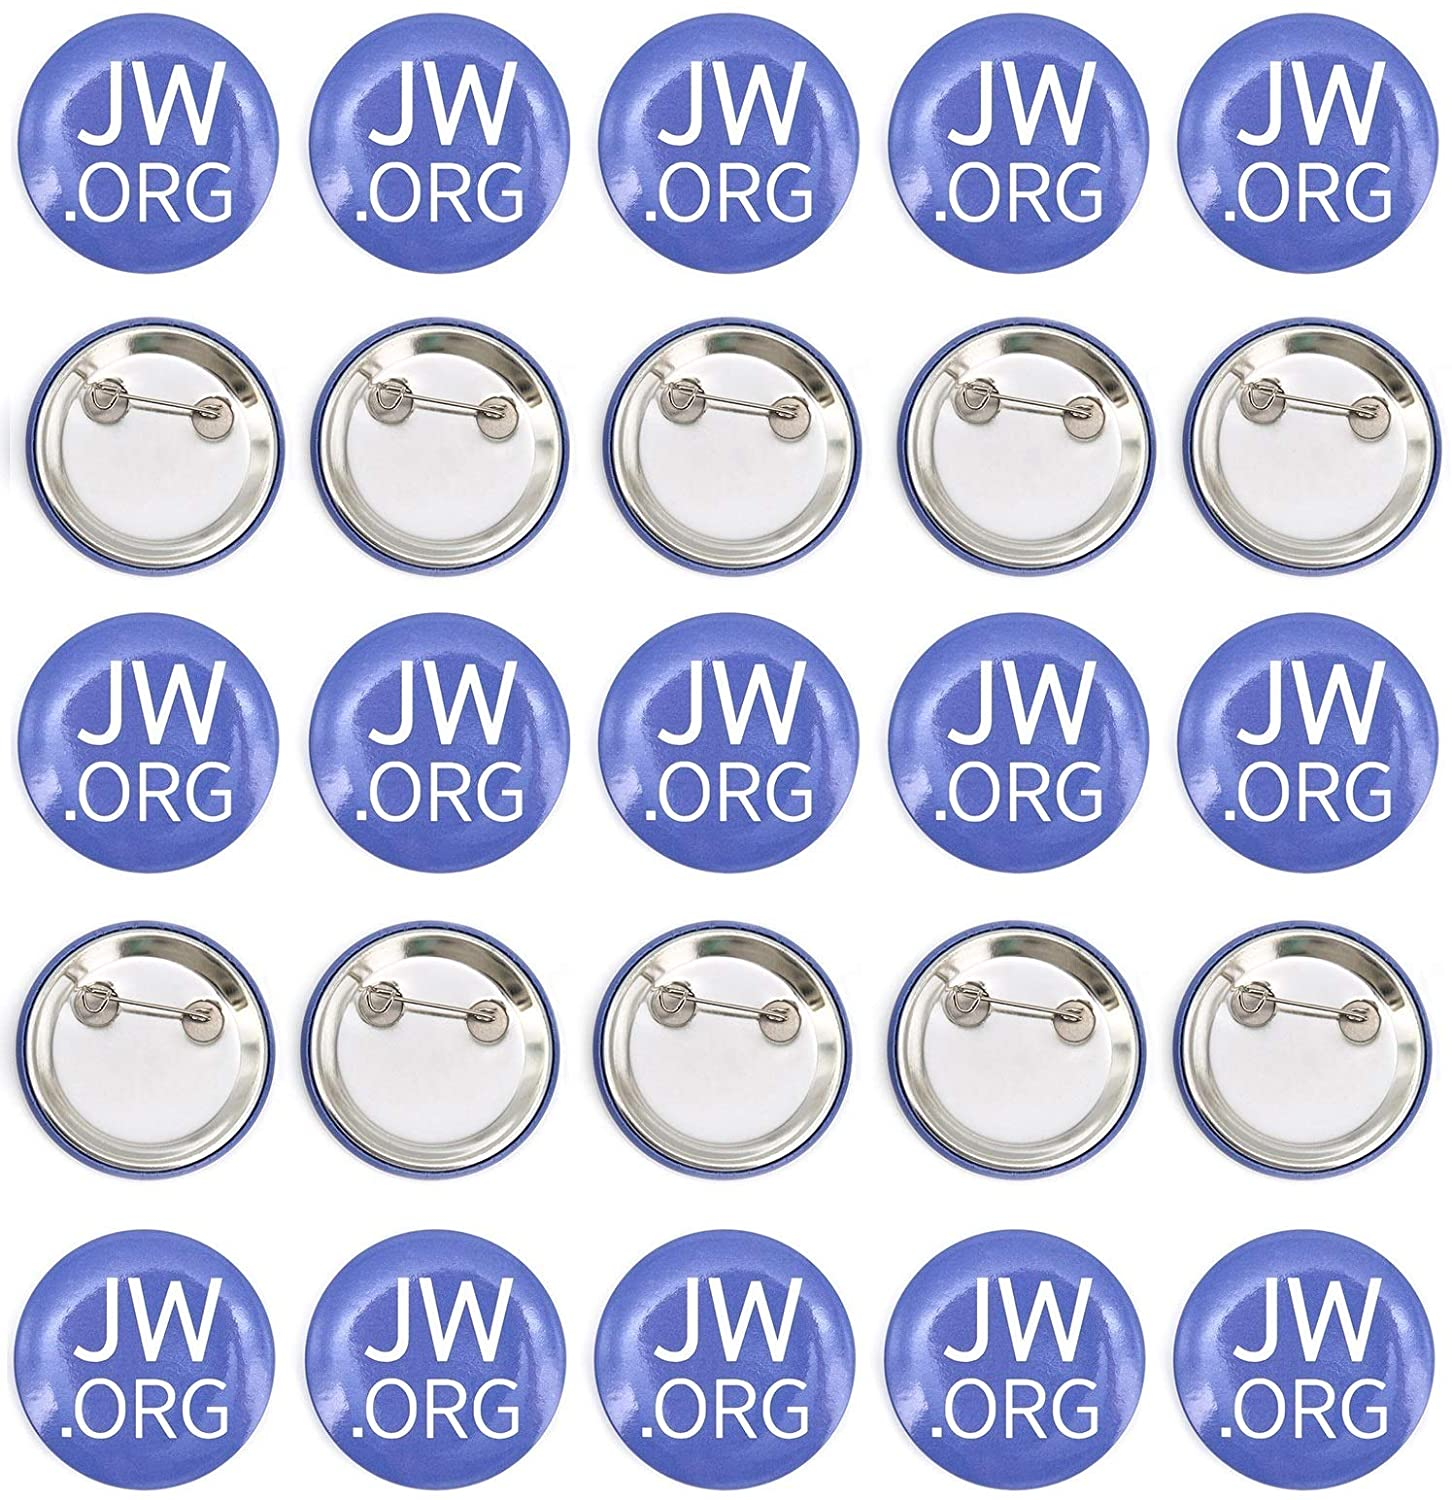 Round Buttons for Jehovah's Witnesses Jw.org 1.5 Pin Back Buttons with safty pin Back - Pack of 25